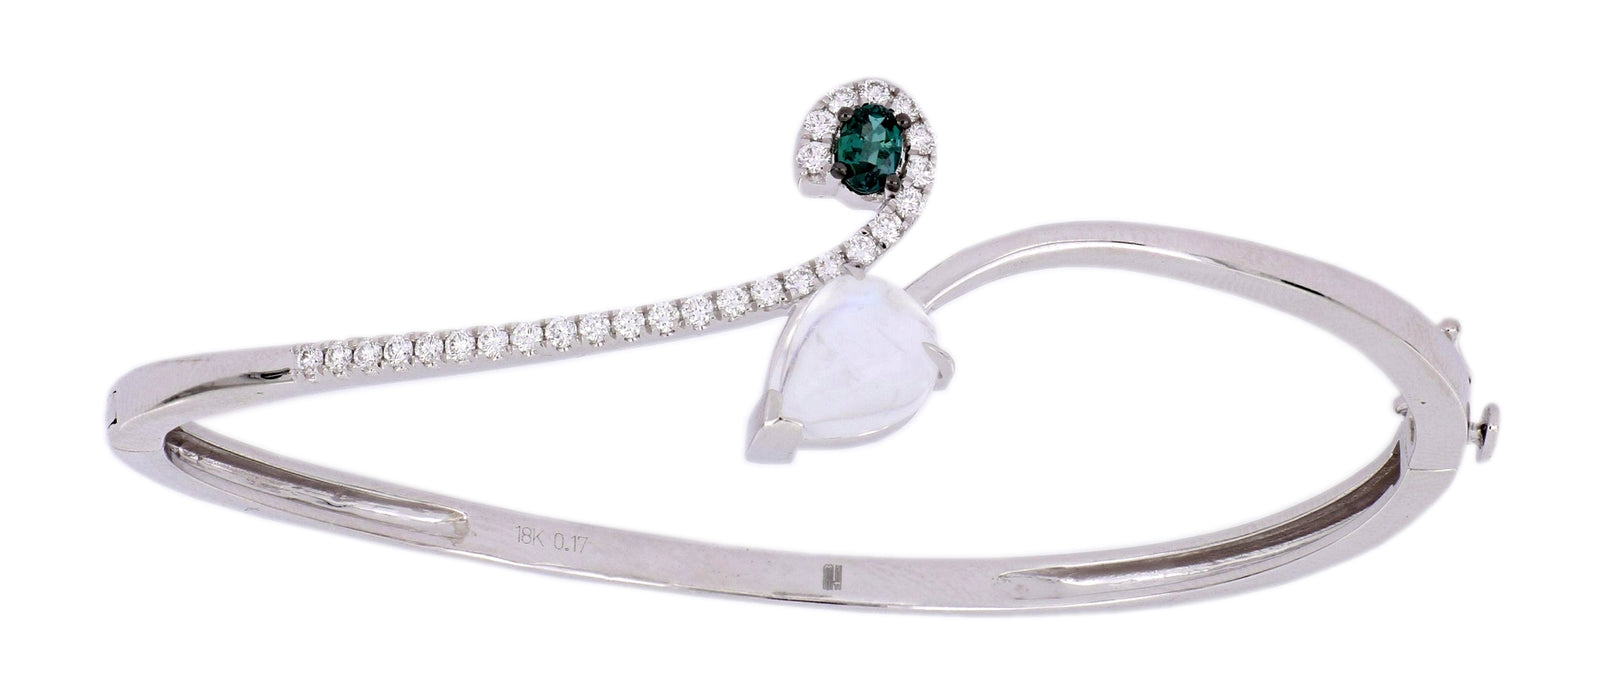 MARK HENRY Alexandrite Ladies Bangle (Alexandrite 0.17 cts. Moon Stone 1.65 cts. White Diamond 0.32 cts.)